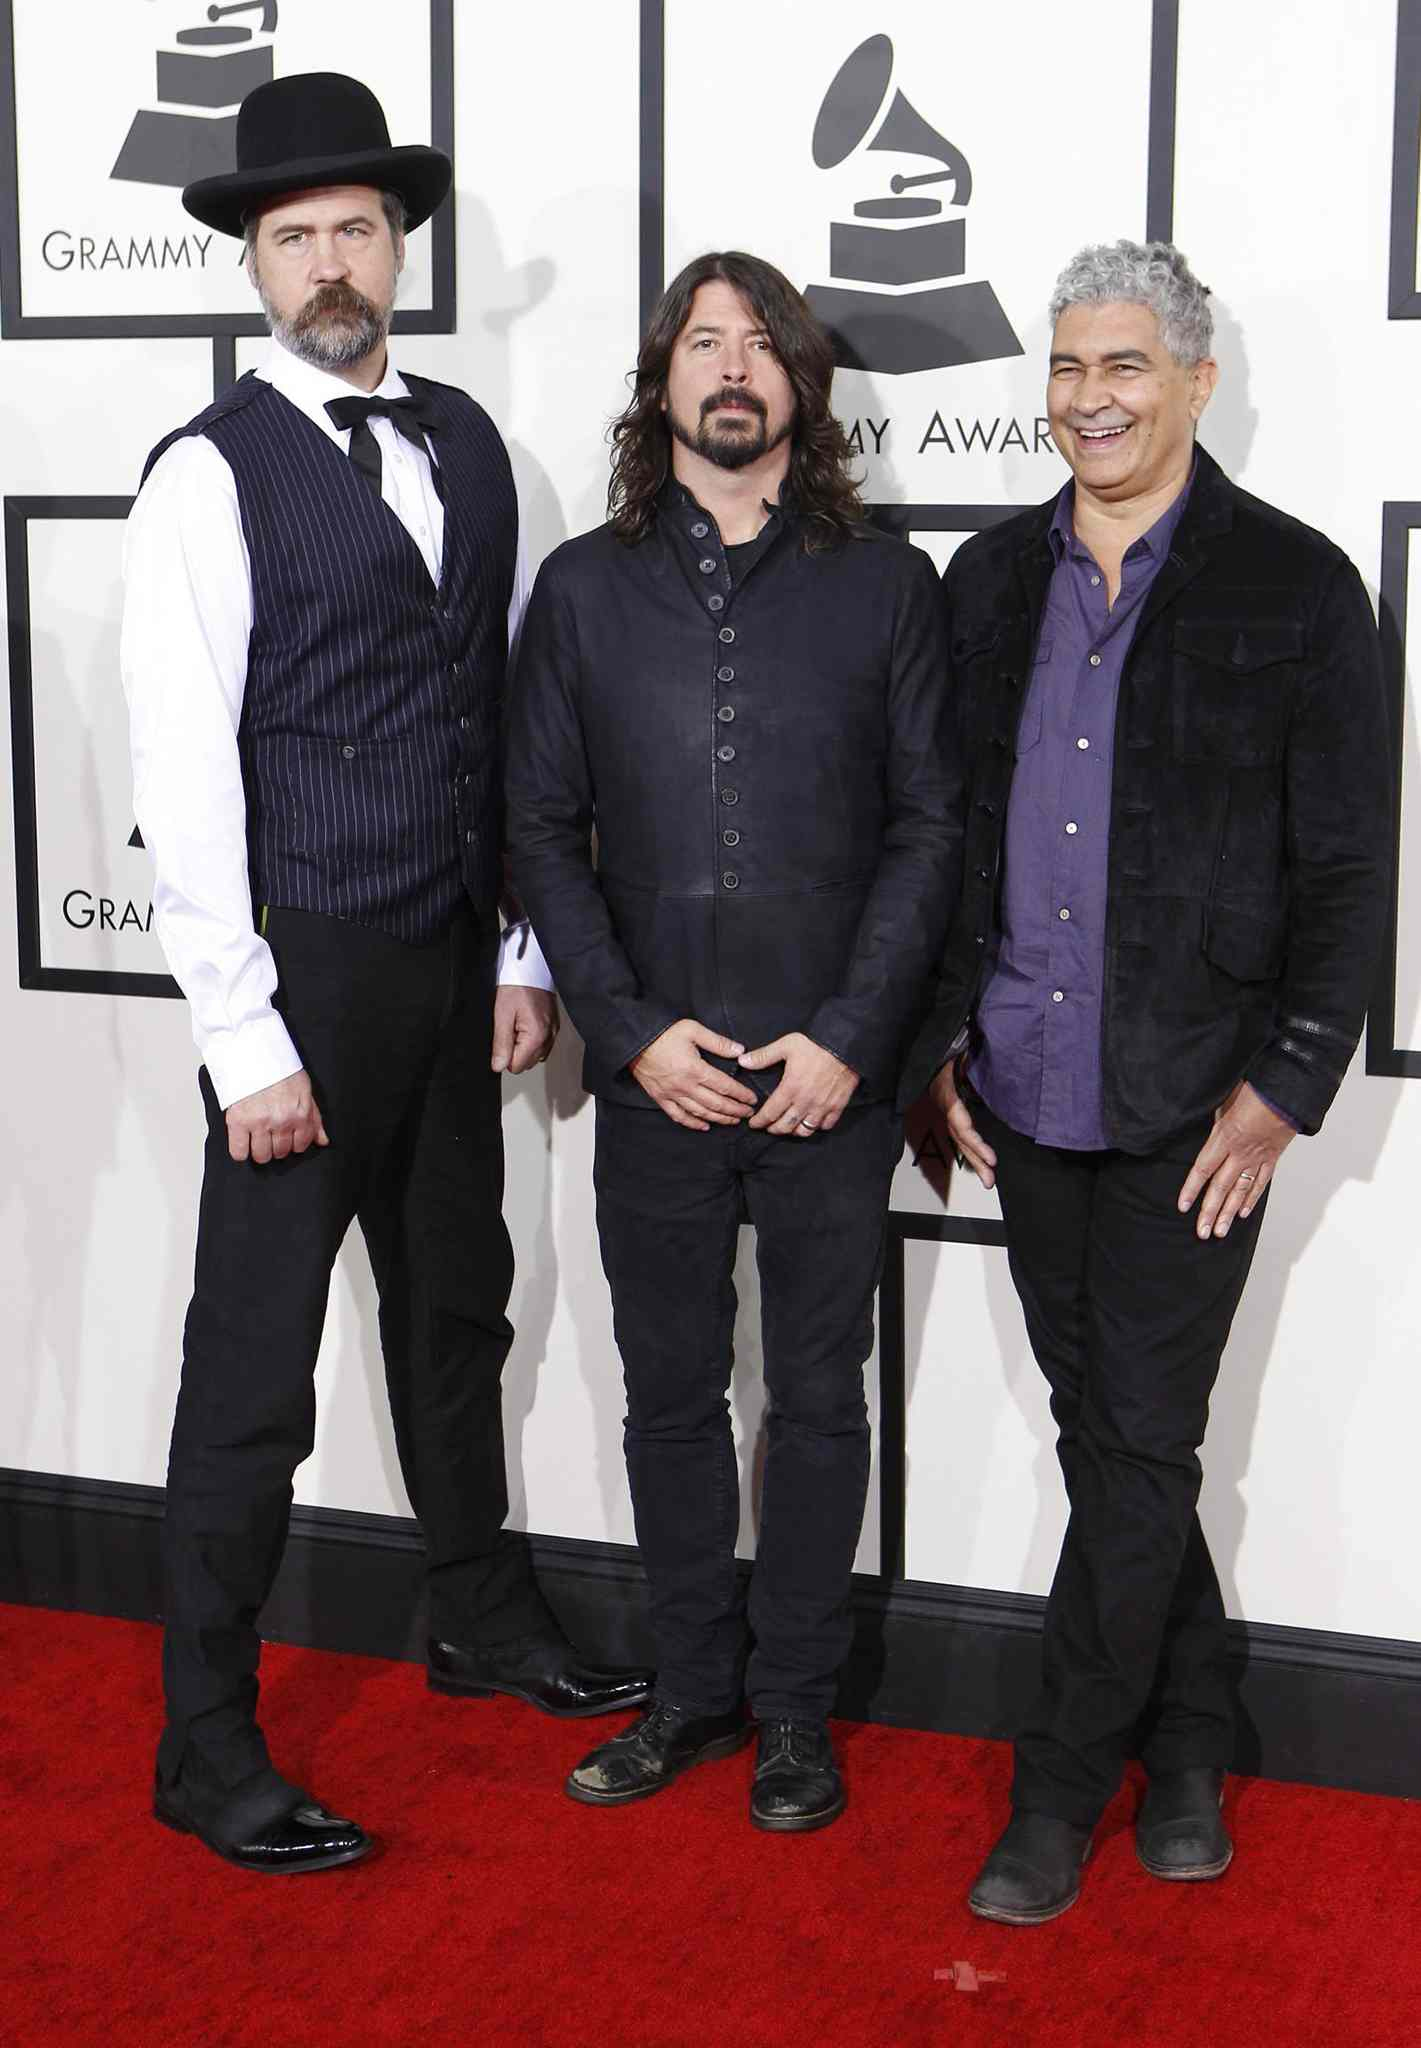 The Foo Fighters arrive at the 56th Annual Grammy Awards.